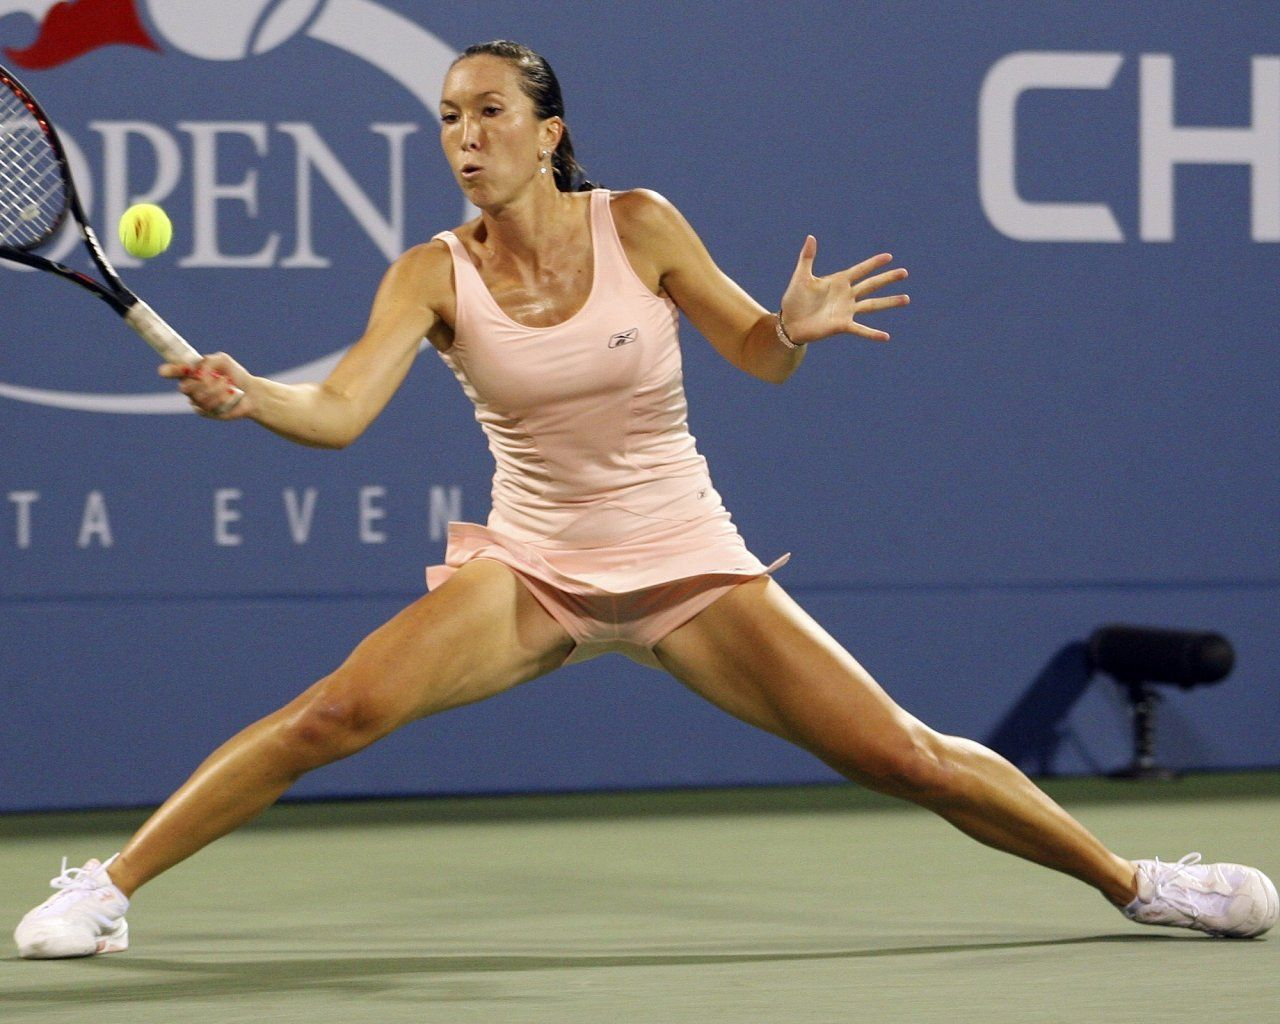 Jankovic Pictures 92